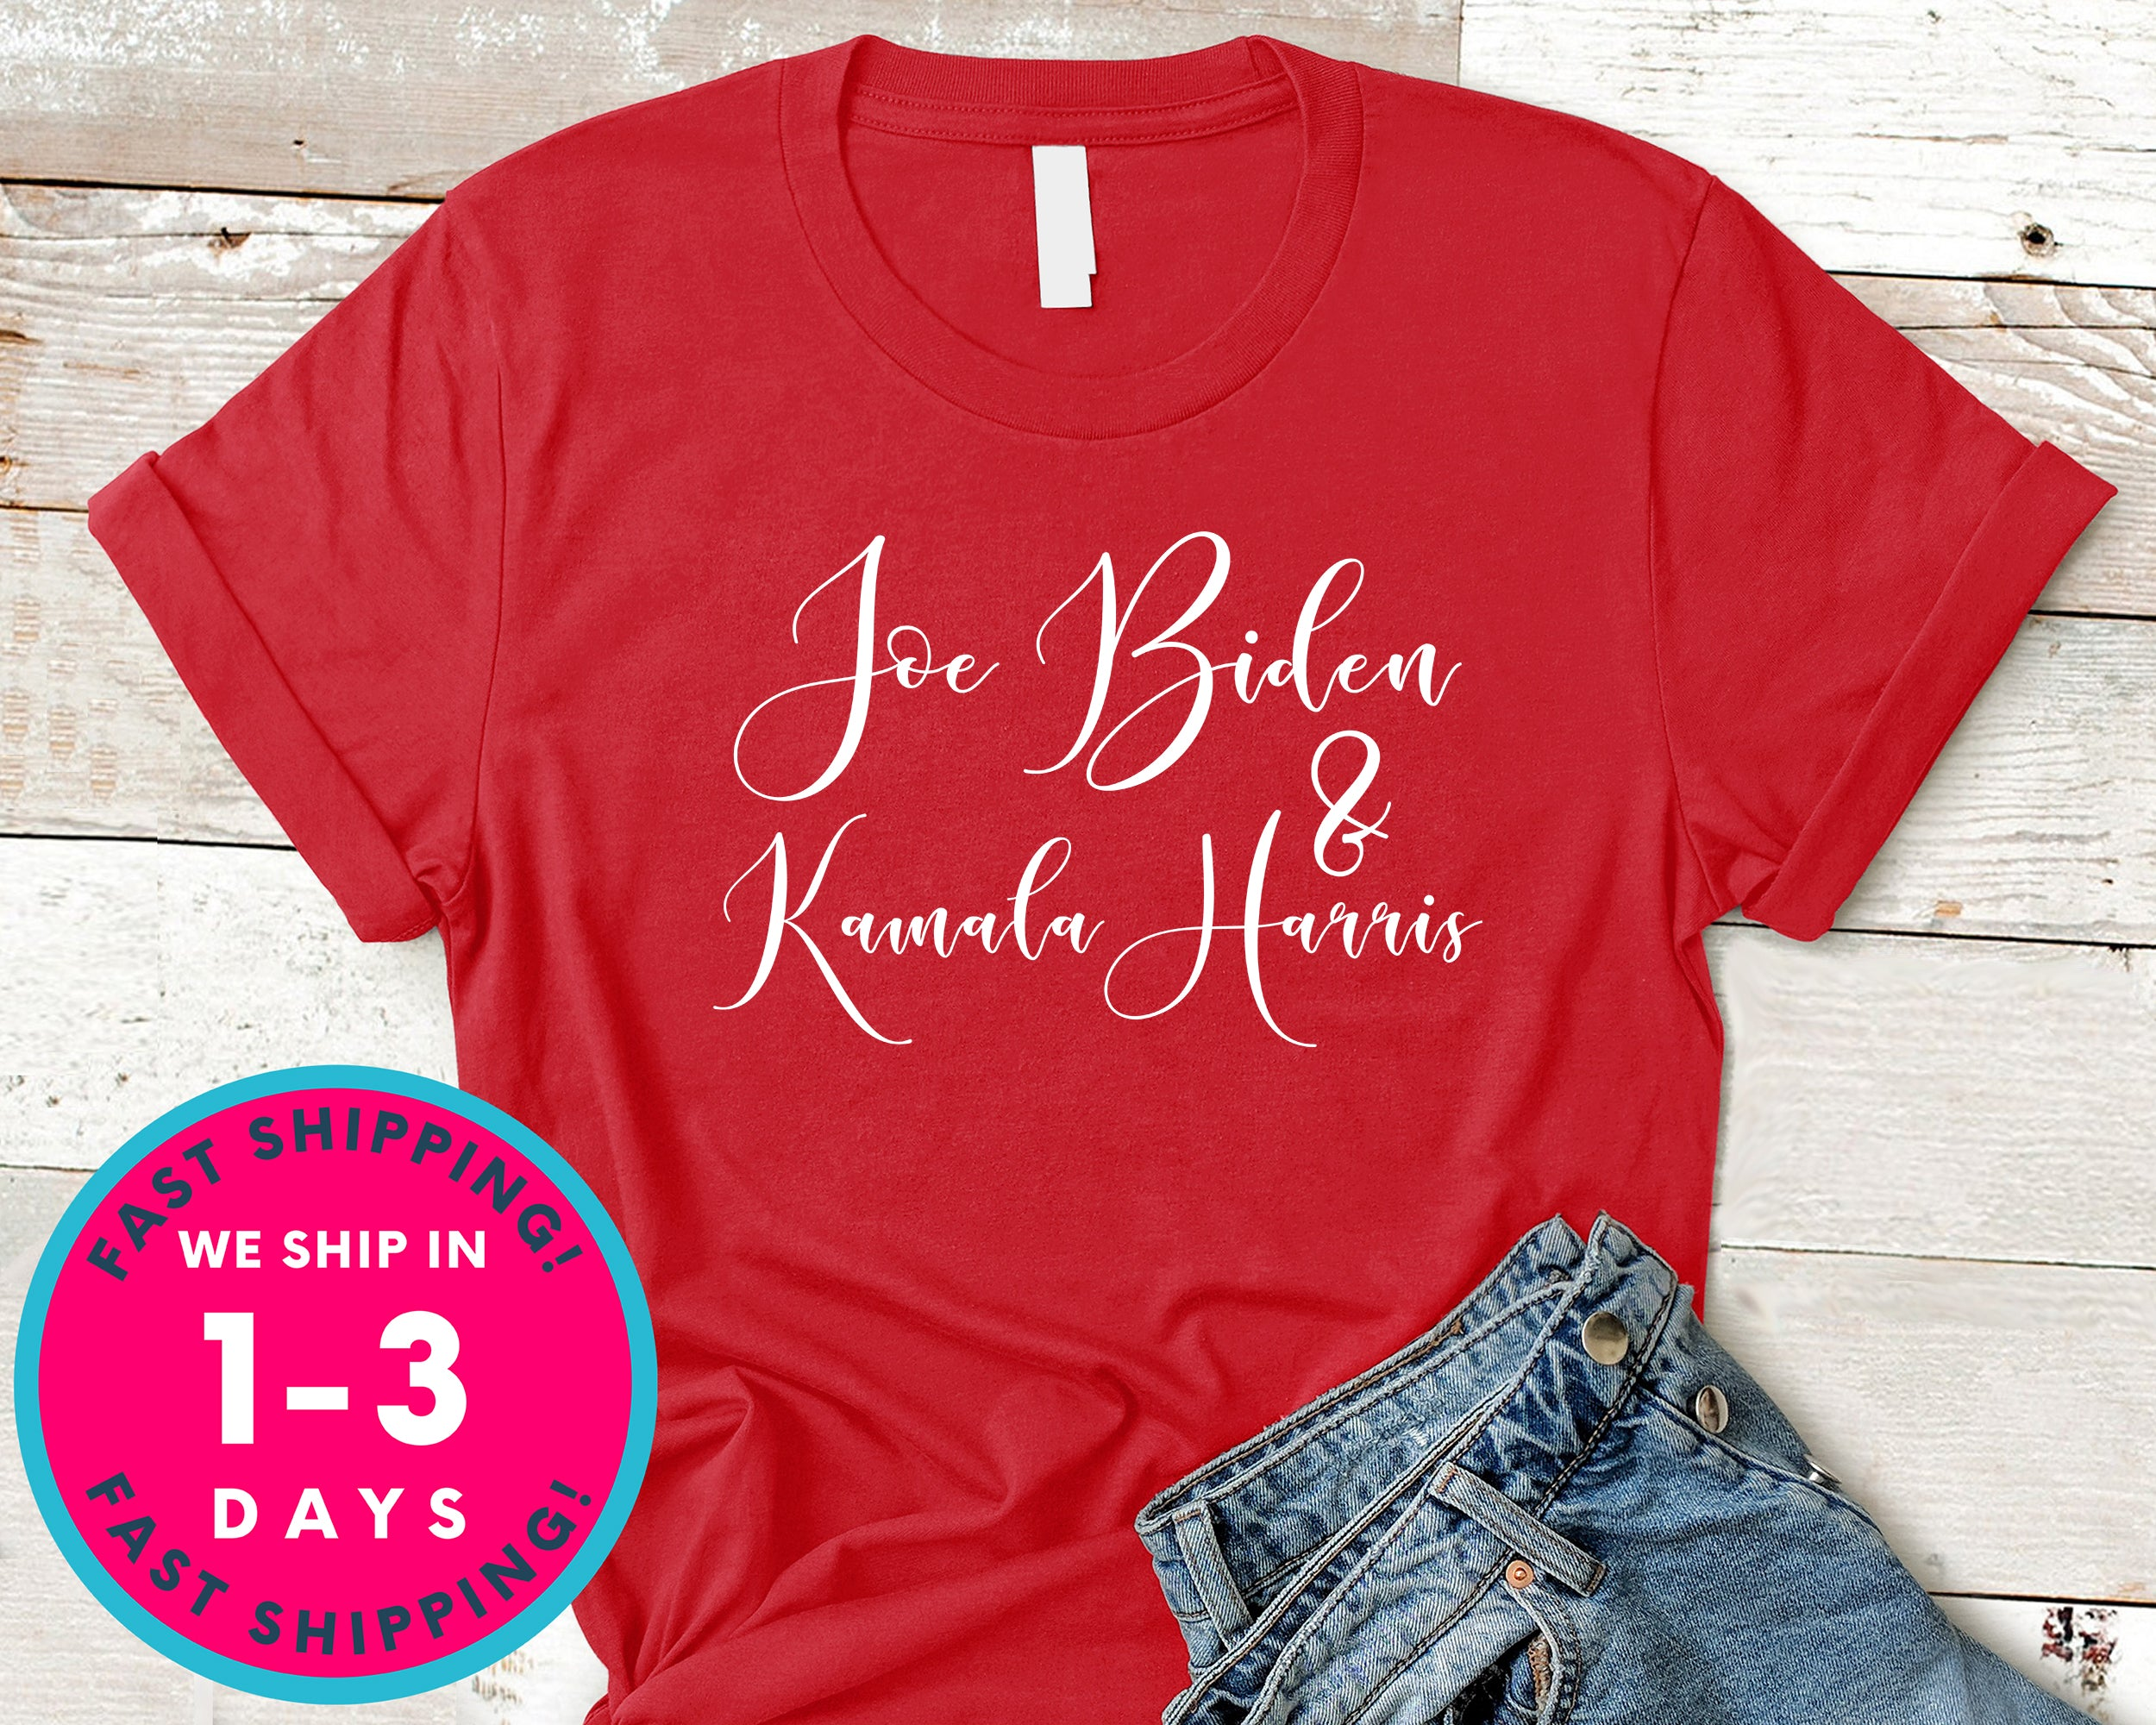 Joe Biden And Kamla Harris T-Shirt - Political Activist Shirt